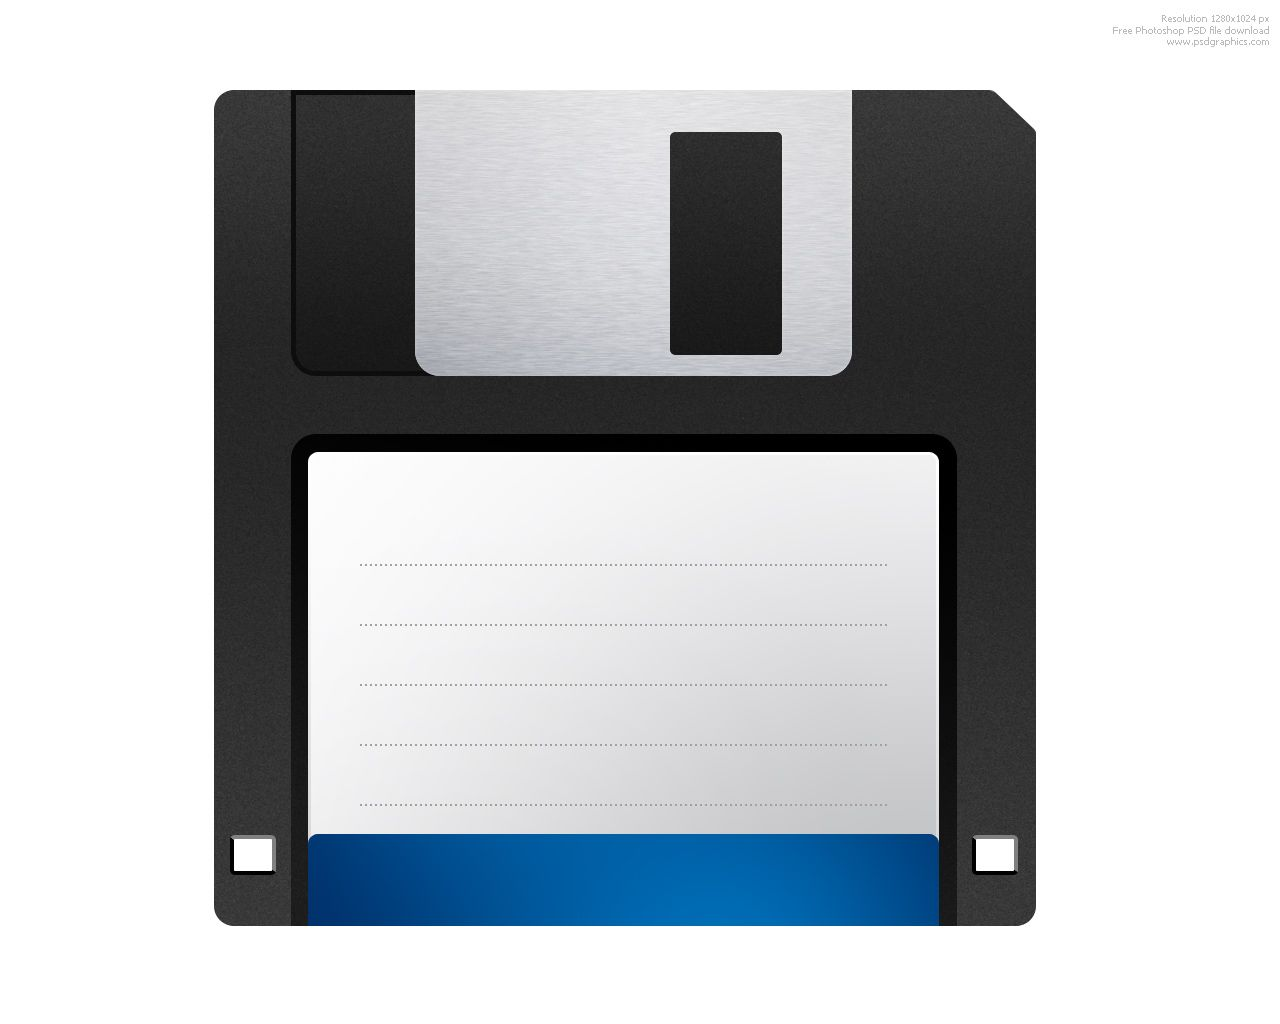 Blast From The Past Vintage Technologies That We No Longer Use Floppy Disk Childhood Memories The Good Old Days